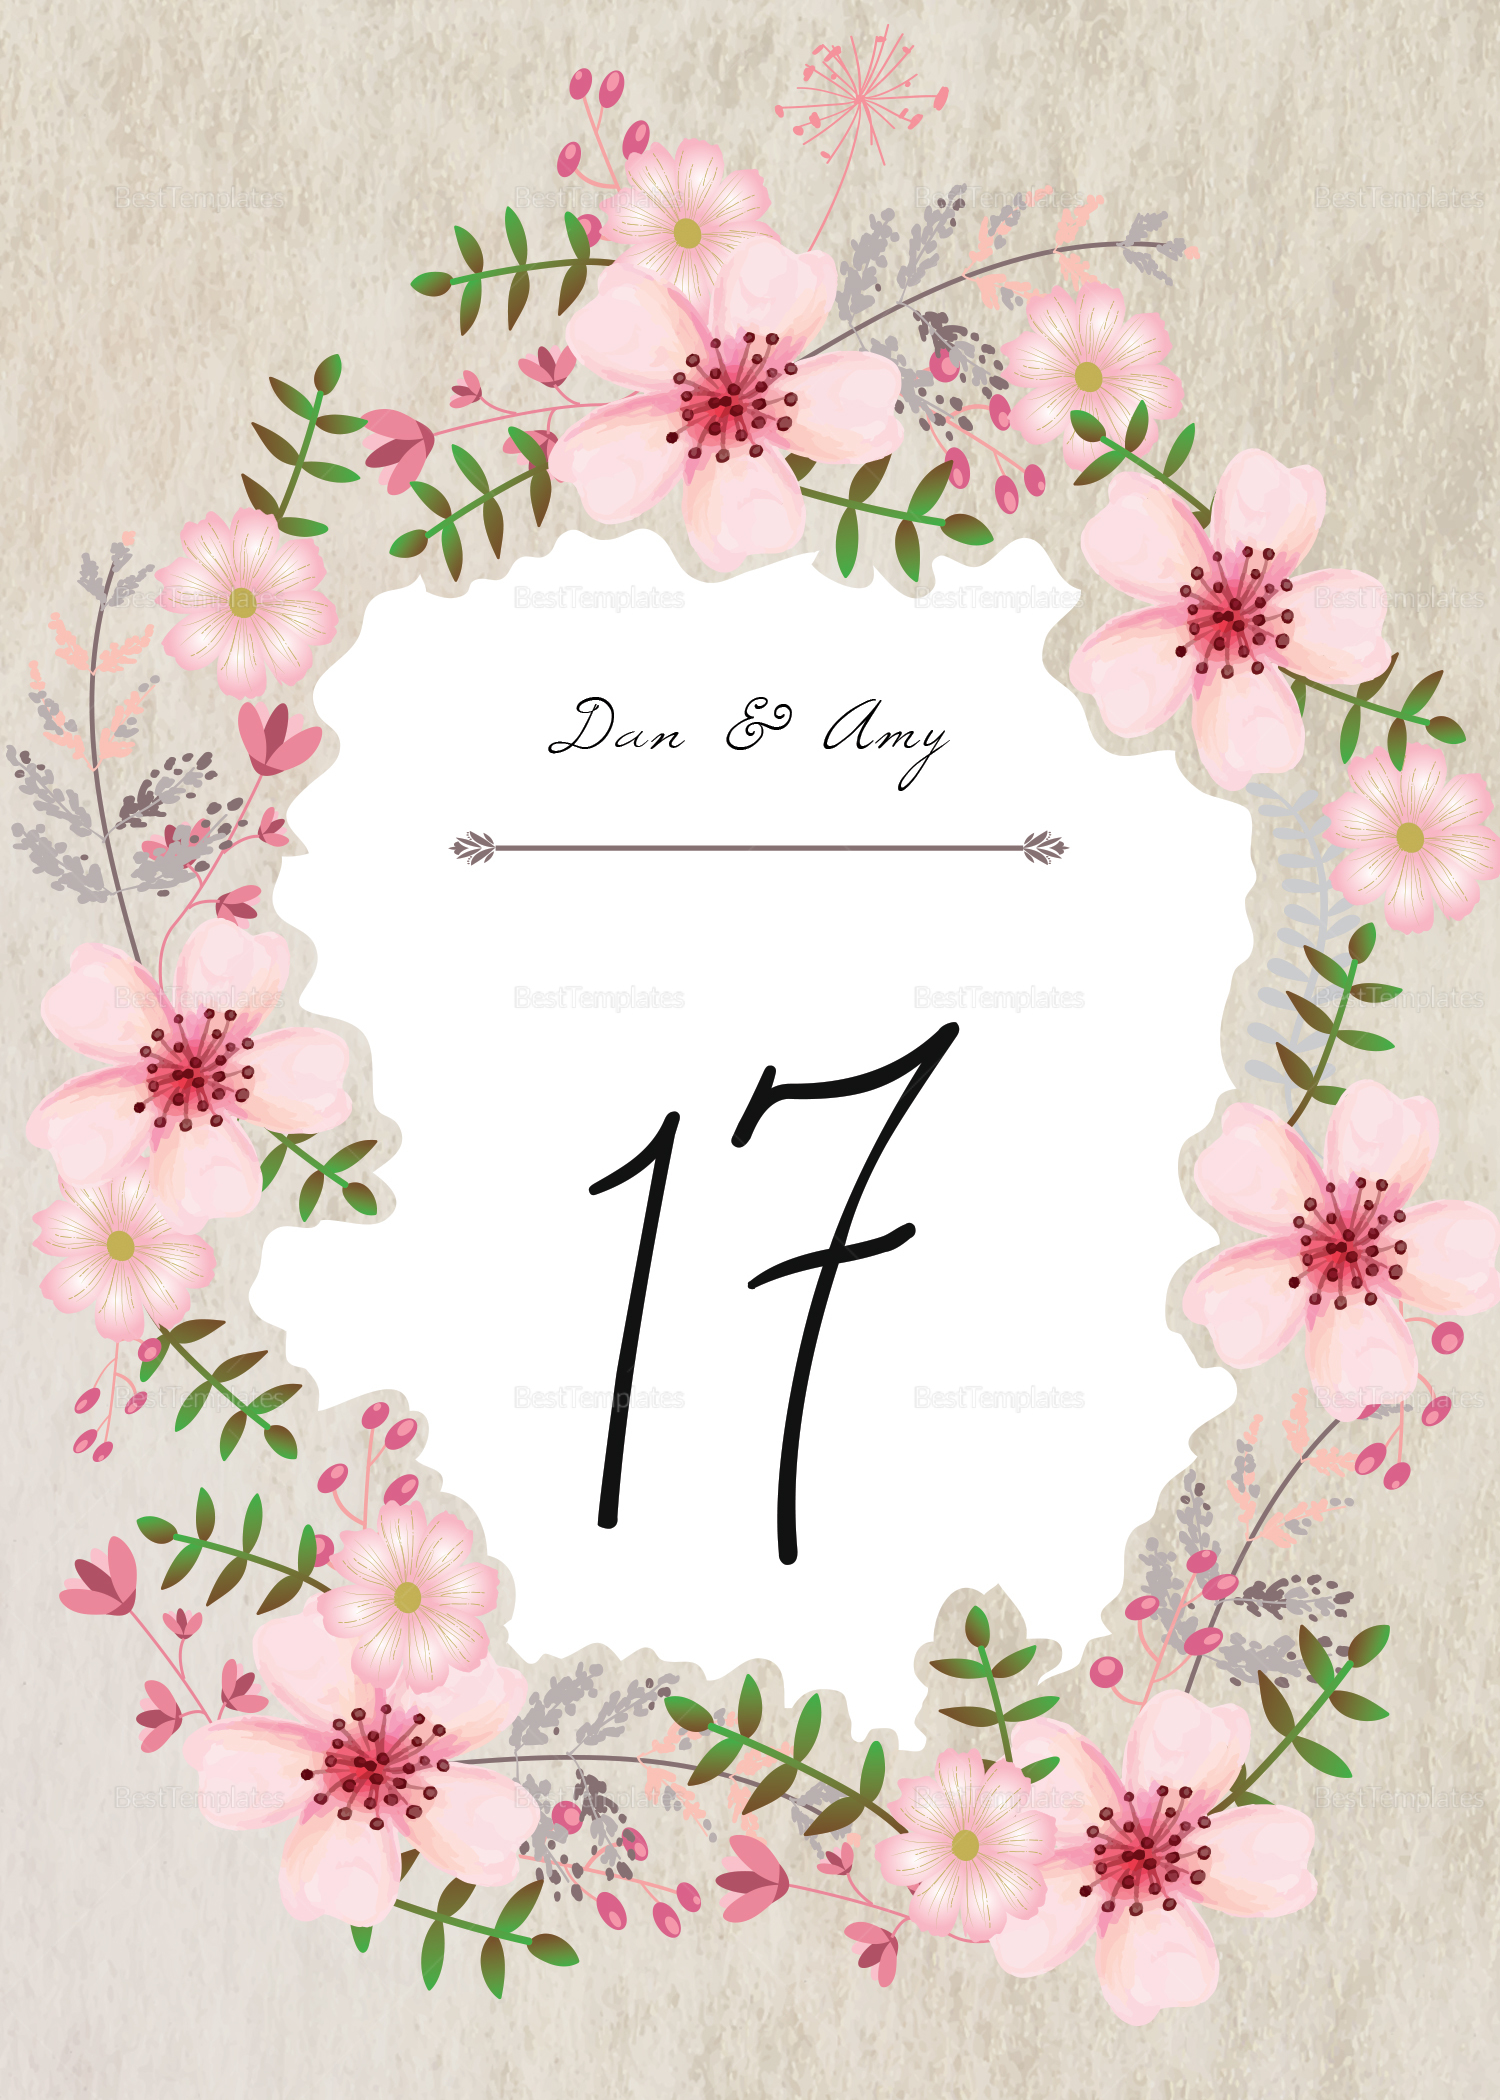 Pink Floral Table Card Design Template